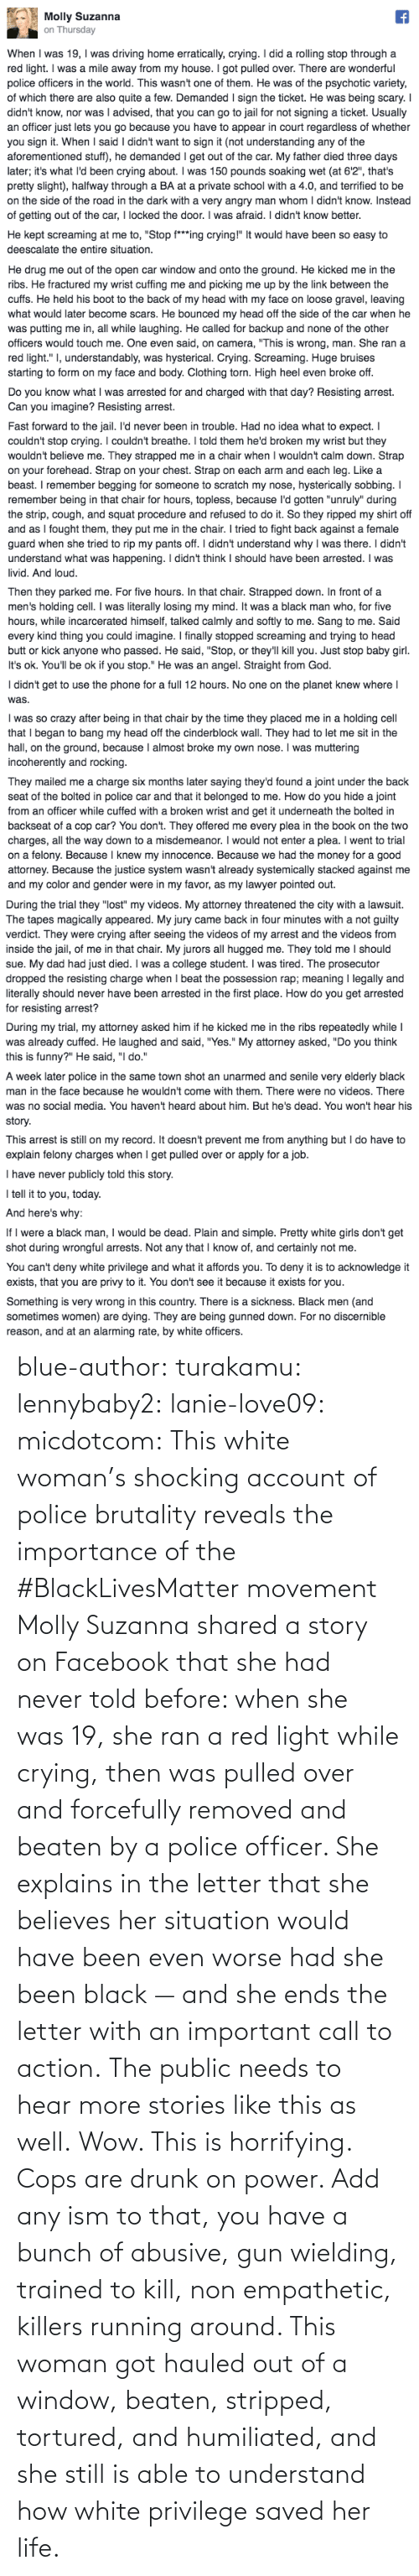 woman: blue-author: turakamu:  lennybaby2:  lanie-love09:  micdotcom:  This white woman's shocking account of police brutality reveals the importance of the #BlackLivesMatter movement Molly Suzanna shared a story on Facebook that she had never told before: when she was 19, she ran a red light while crying, then was pulled over and forcefully removed and beaten by a police officer. She explains in the letter that she believes her situation would have been even worse had she been black — and she ends the letter with an important call to action.  The public needs to hear more stories like this as well.  Wow. This is horrifying.  Cops are drunk on power. Add any ism to that, you have a bunch of abusive, gun wielding, trained to kill, non empathetic, killers running around.    This woman got hauled out of a window, beaten, stripped, tortured, and humiliated, and she still is able to understand how white privilege saved her life.